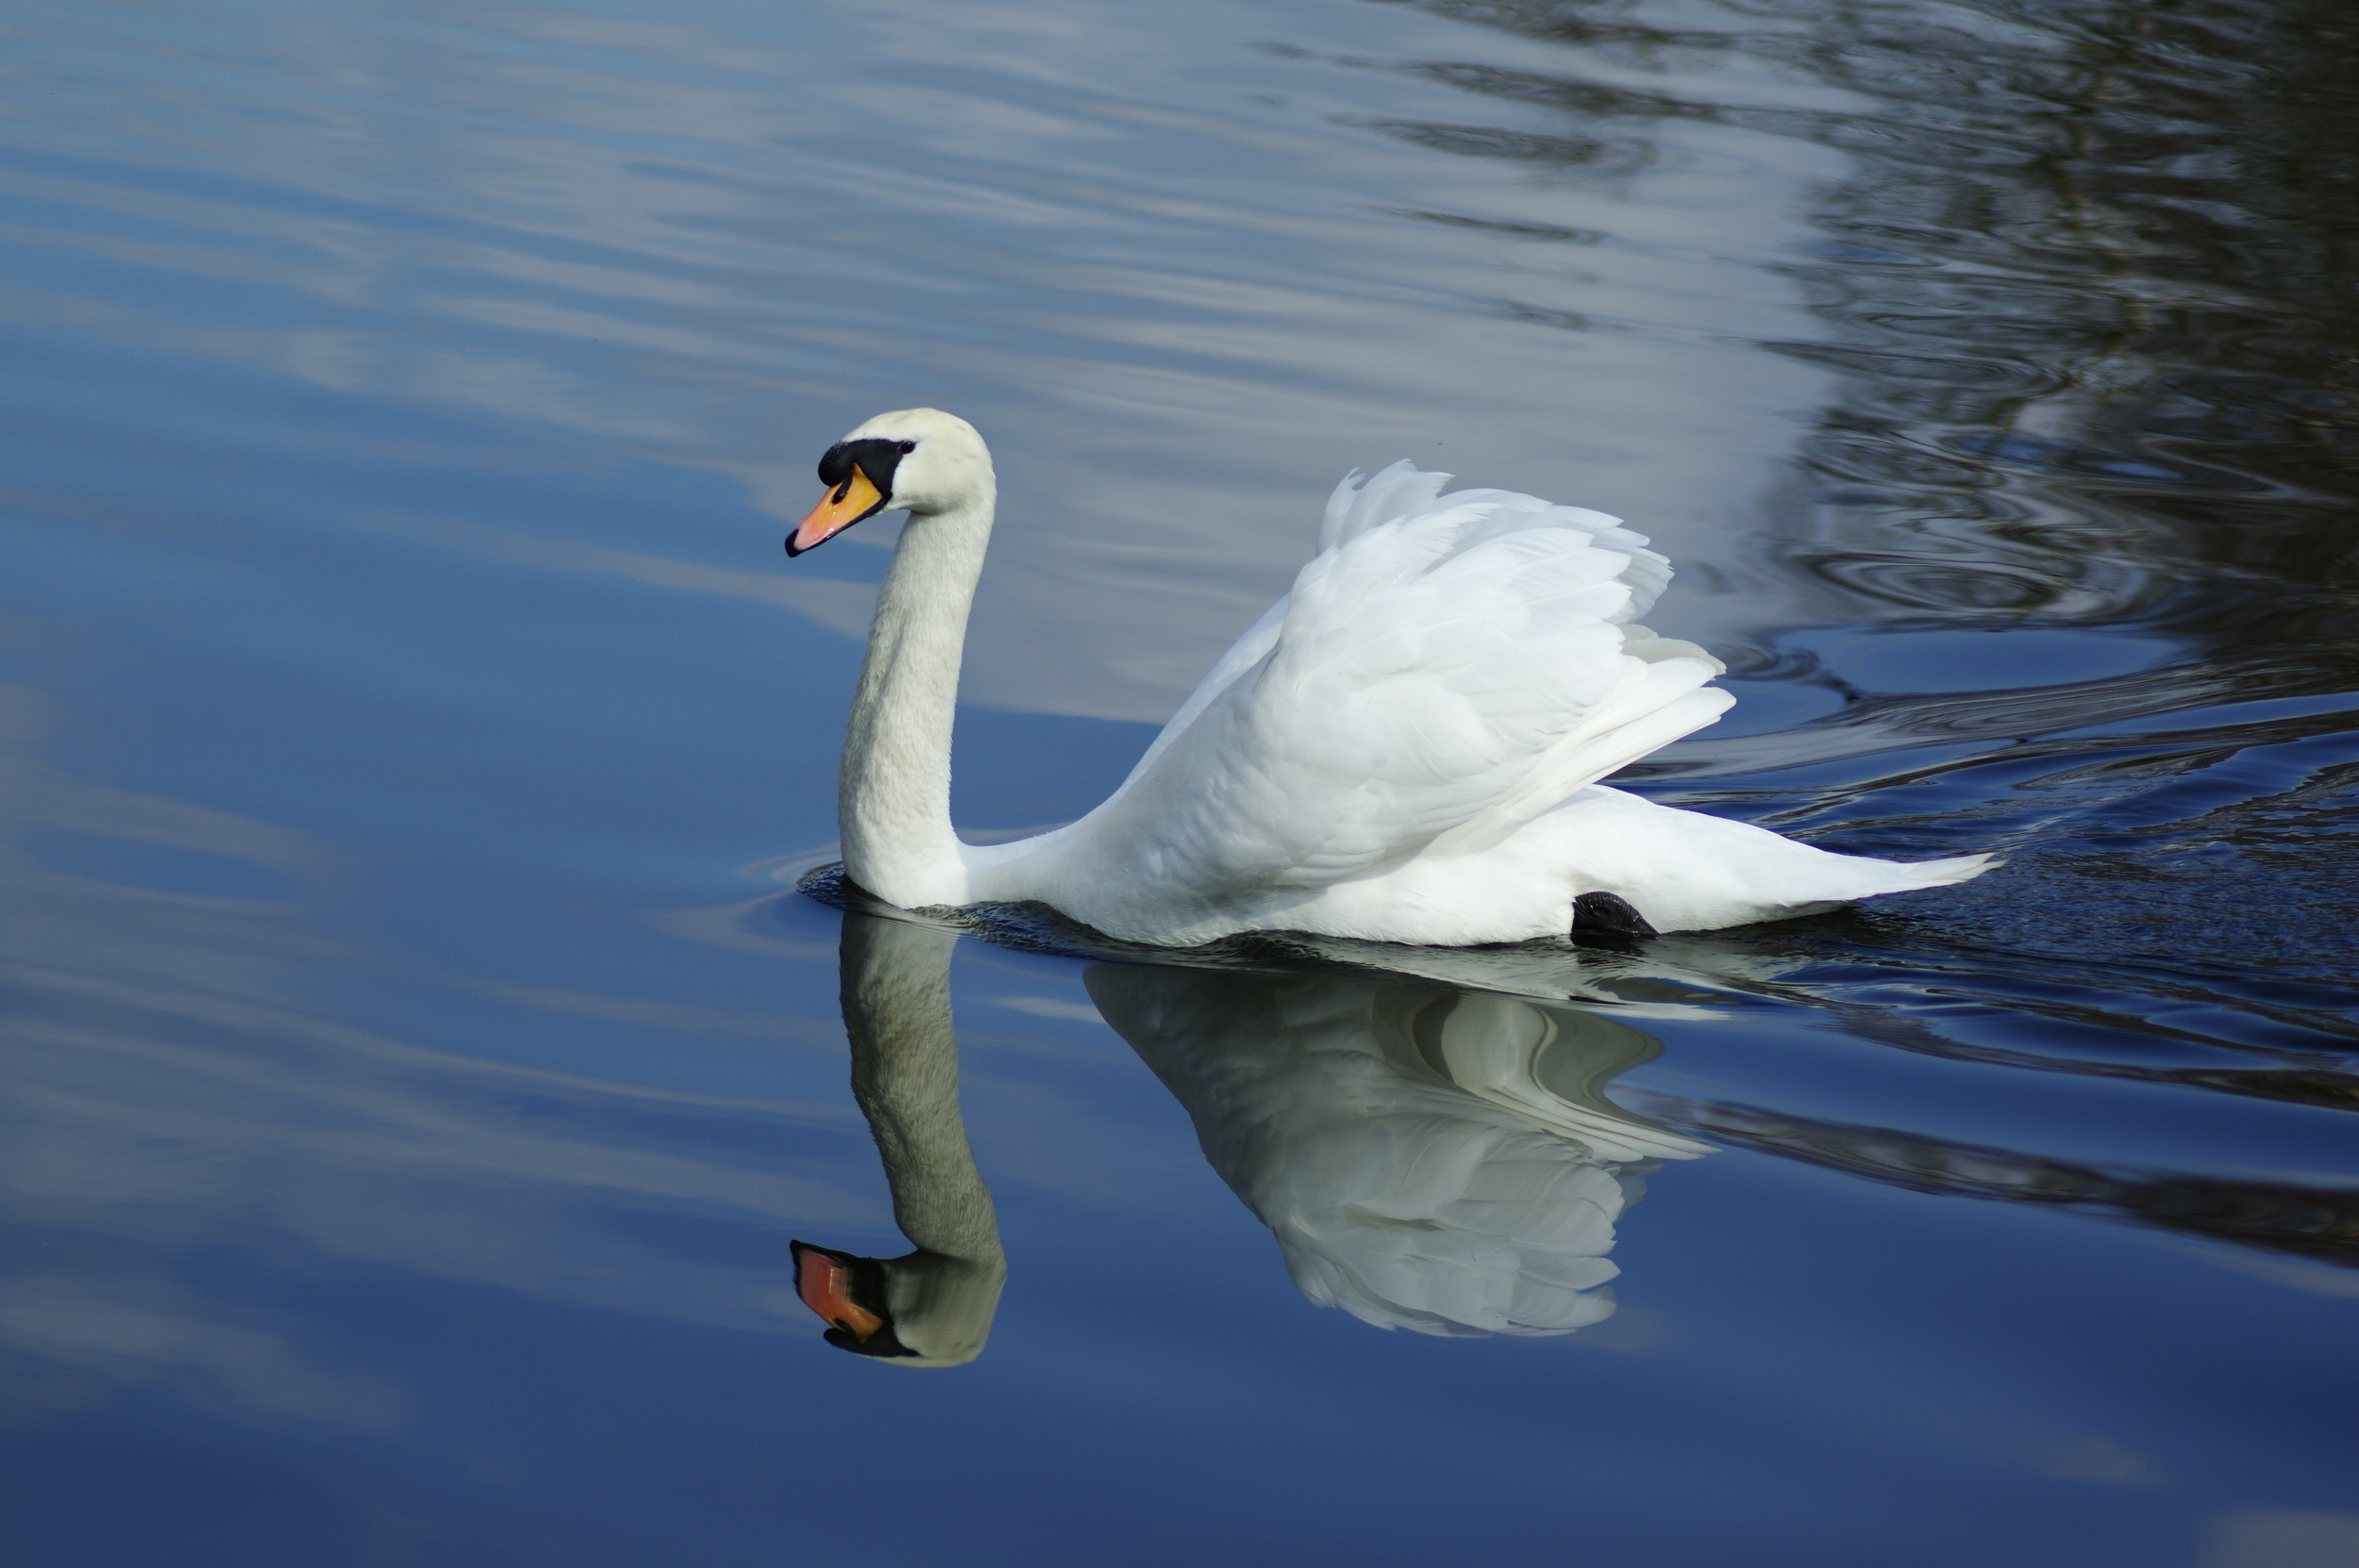 Majestic Mute Swan and Reflection #3